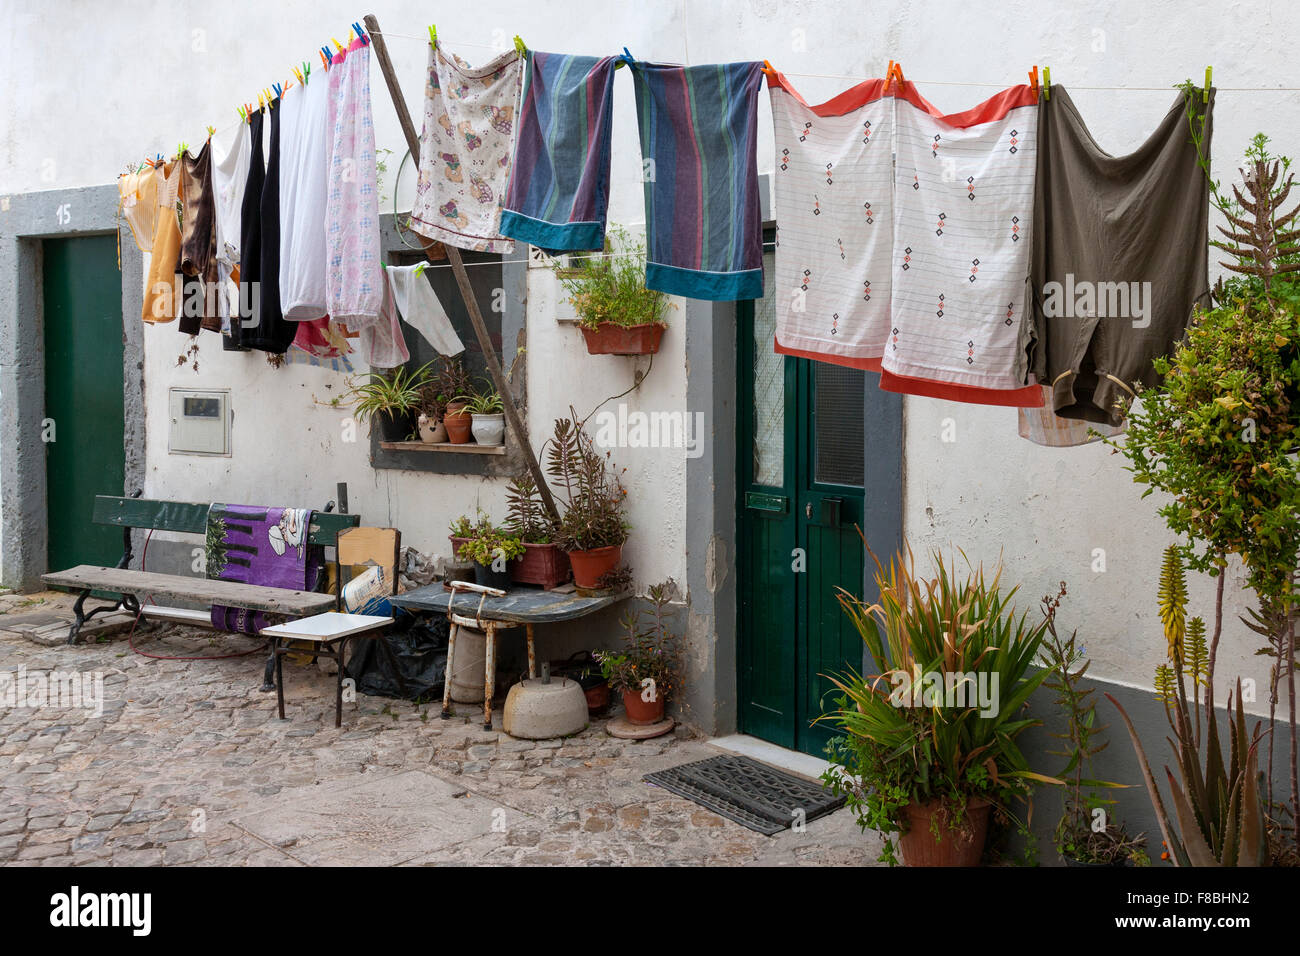 Washing on line with prop and pegs, Faro Portugal. - Stock Image